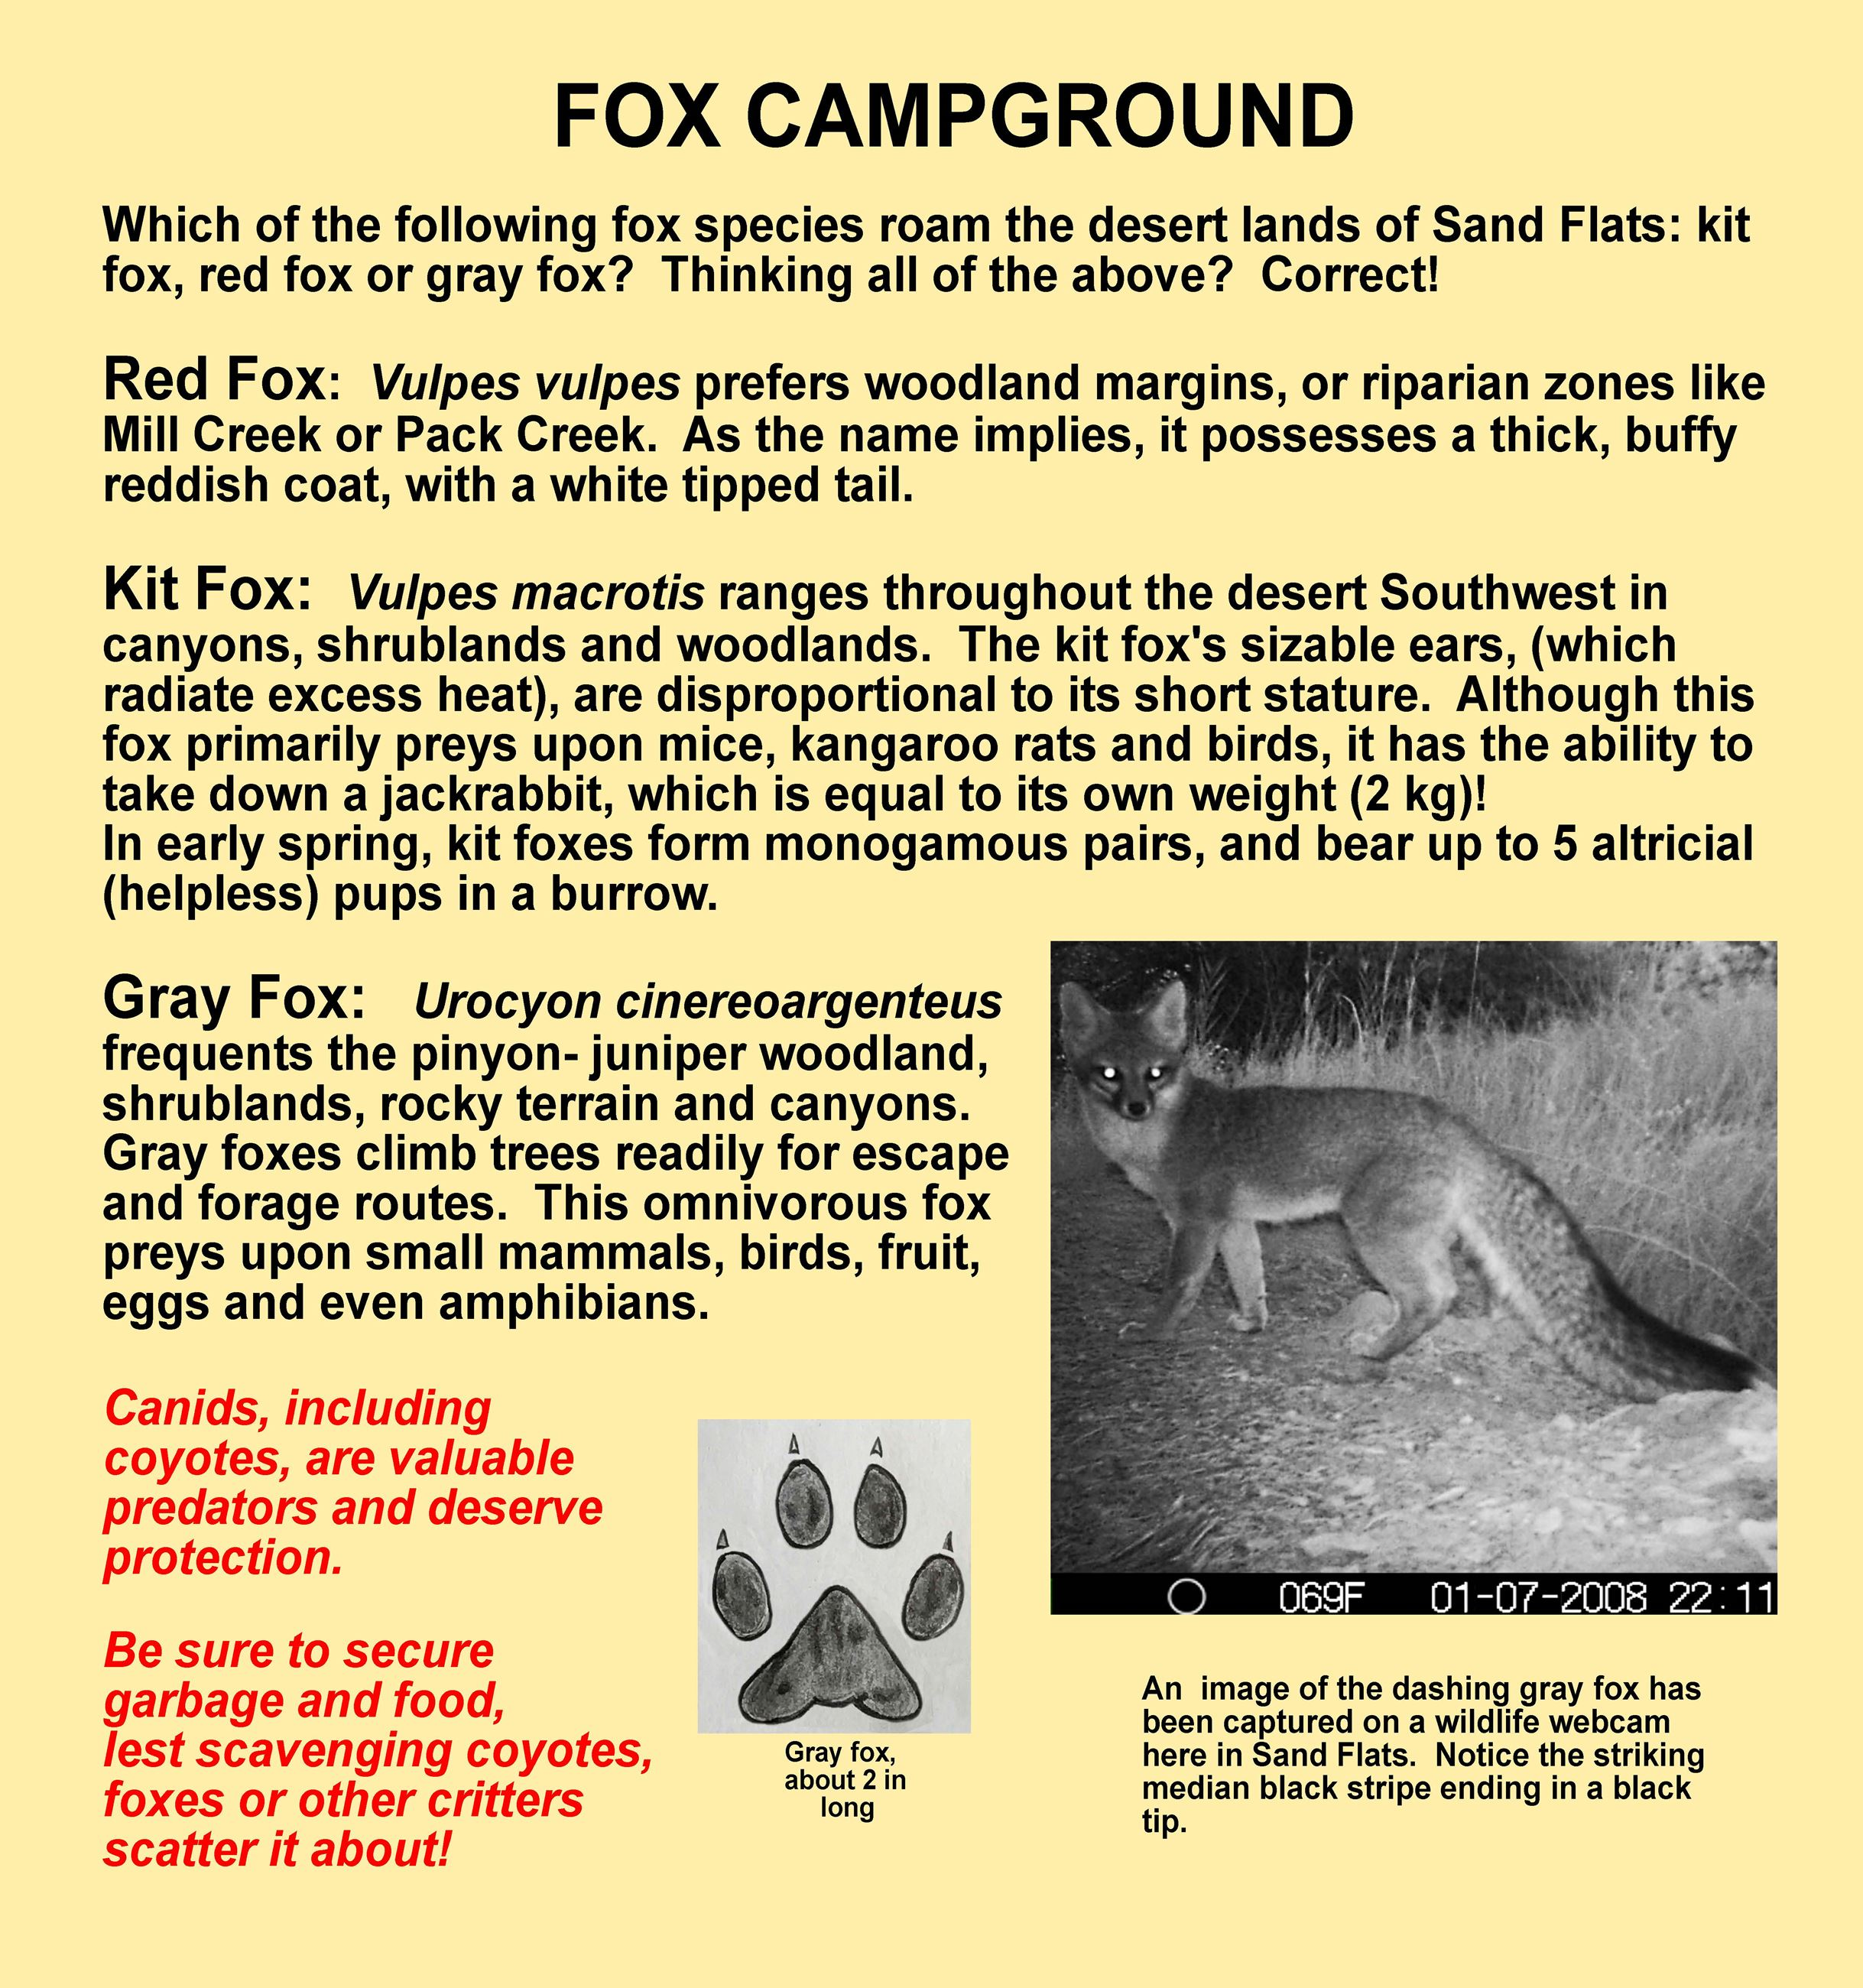 Fox Campground